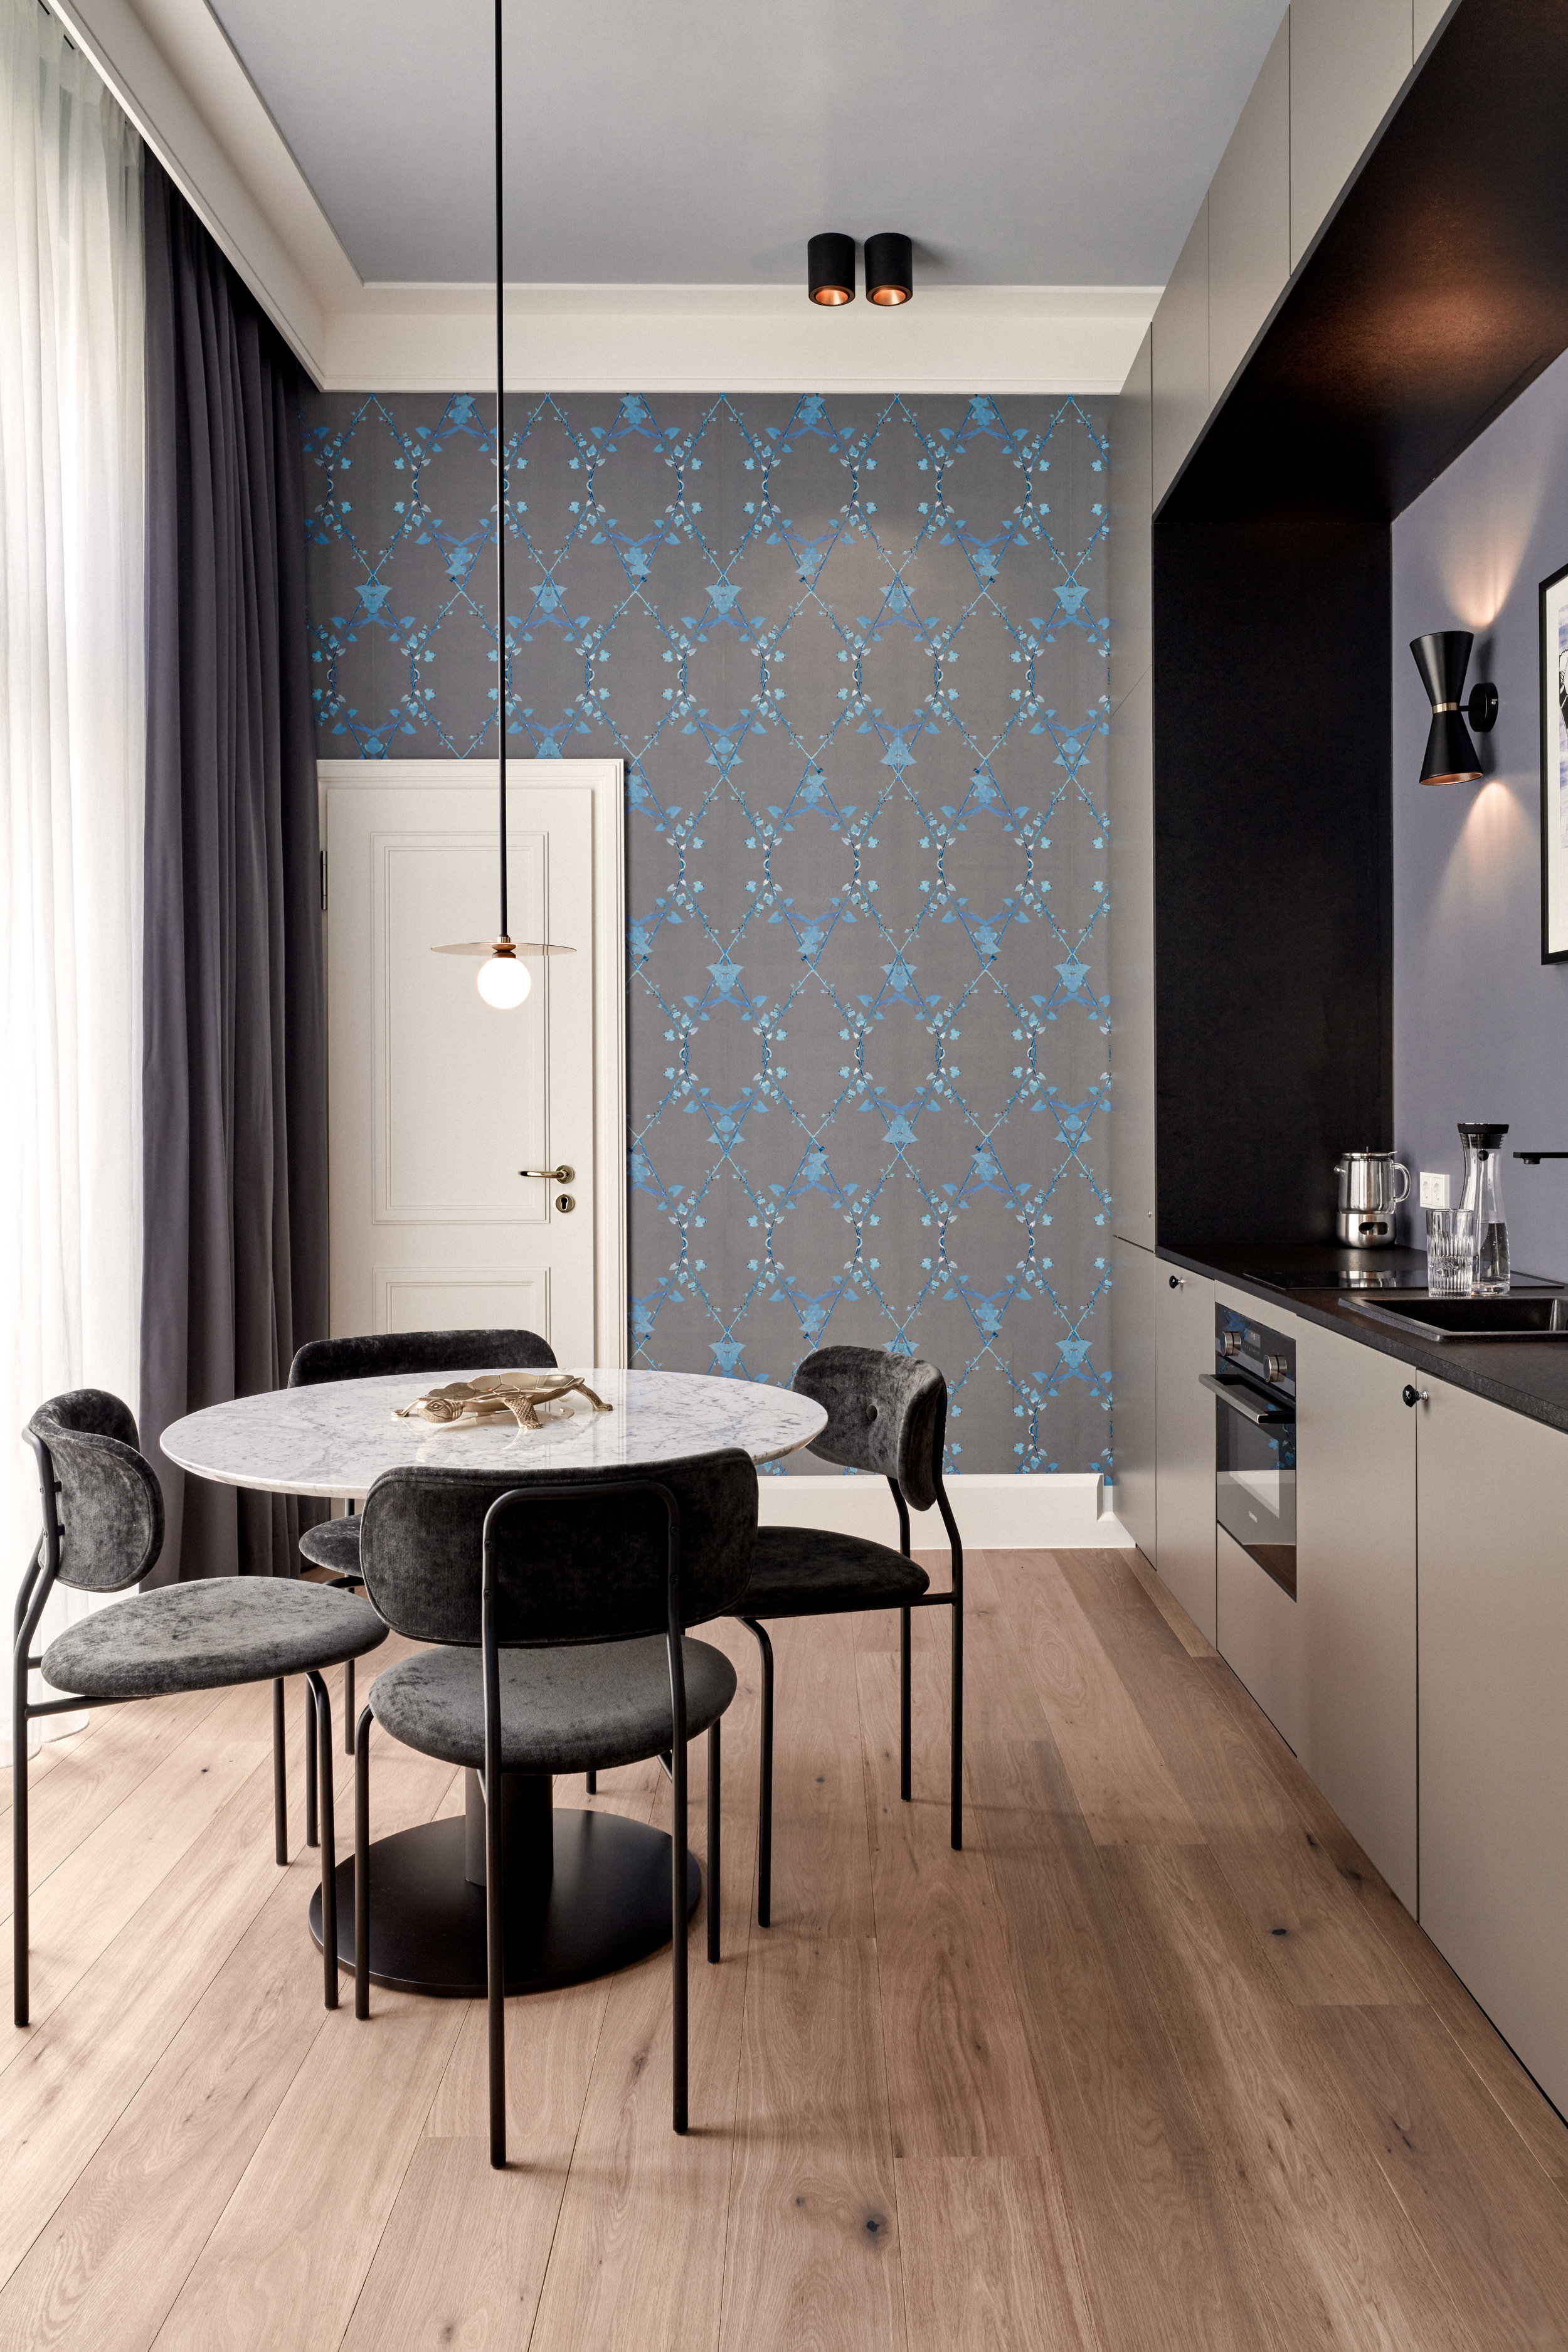 Apartment Suite with Morning Glory wallpaper in custom Turquoise